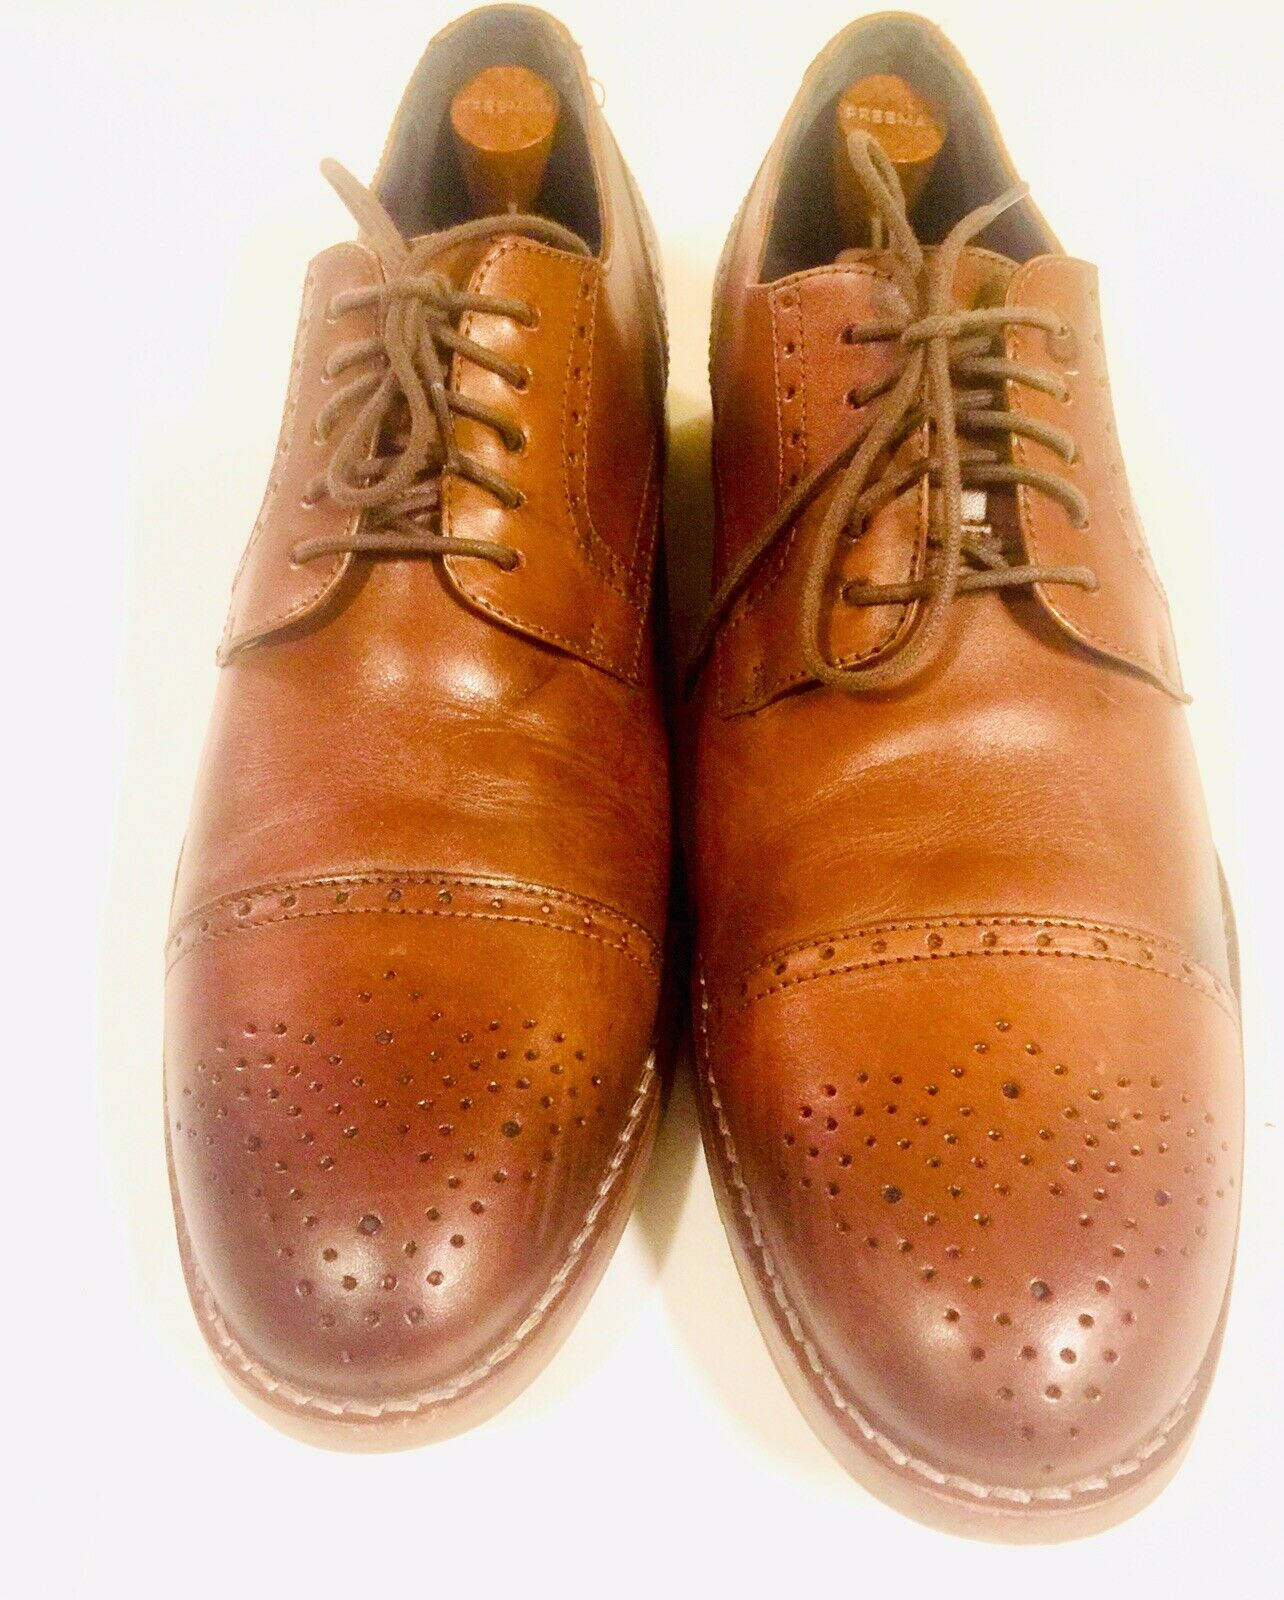 Johnston & Murphy 1850 J & M Wingtip Men's Dress shoes  10 1 2M Leather